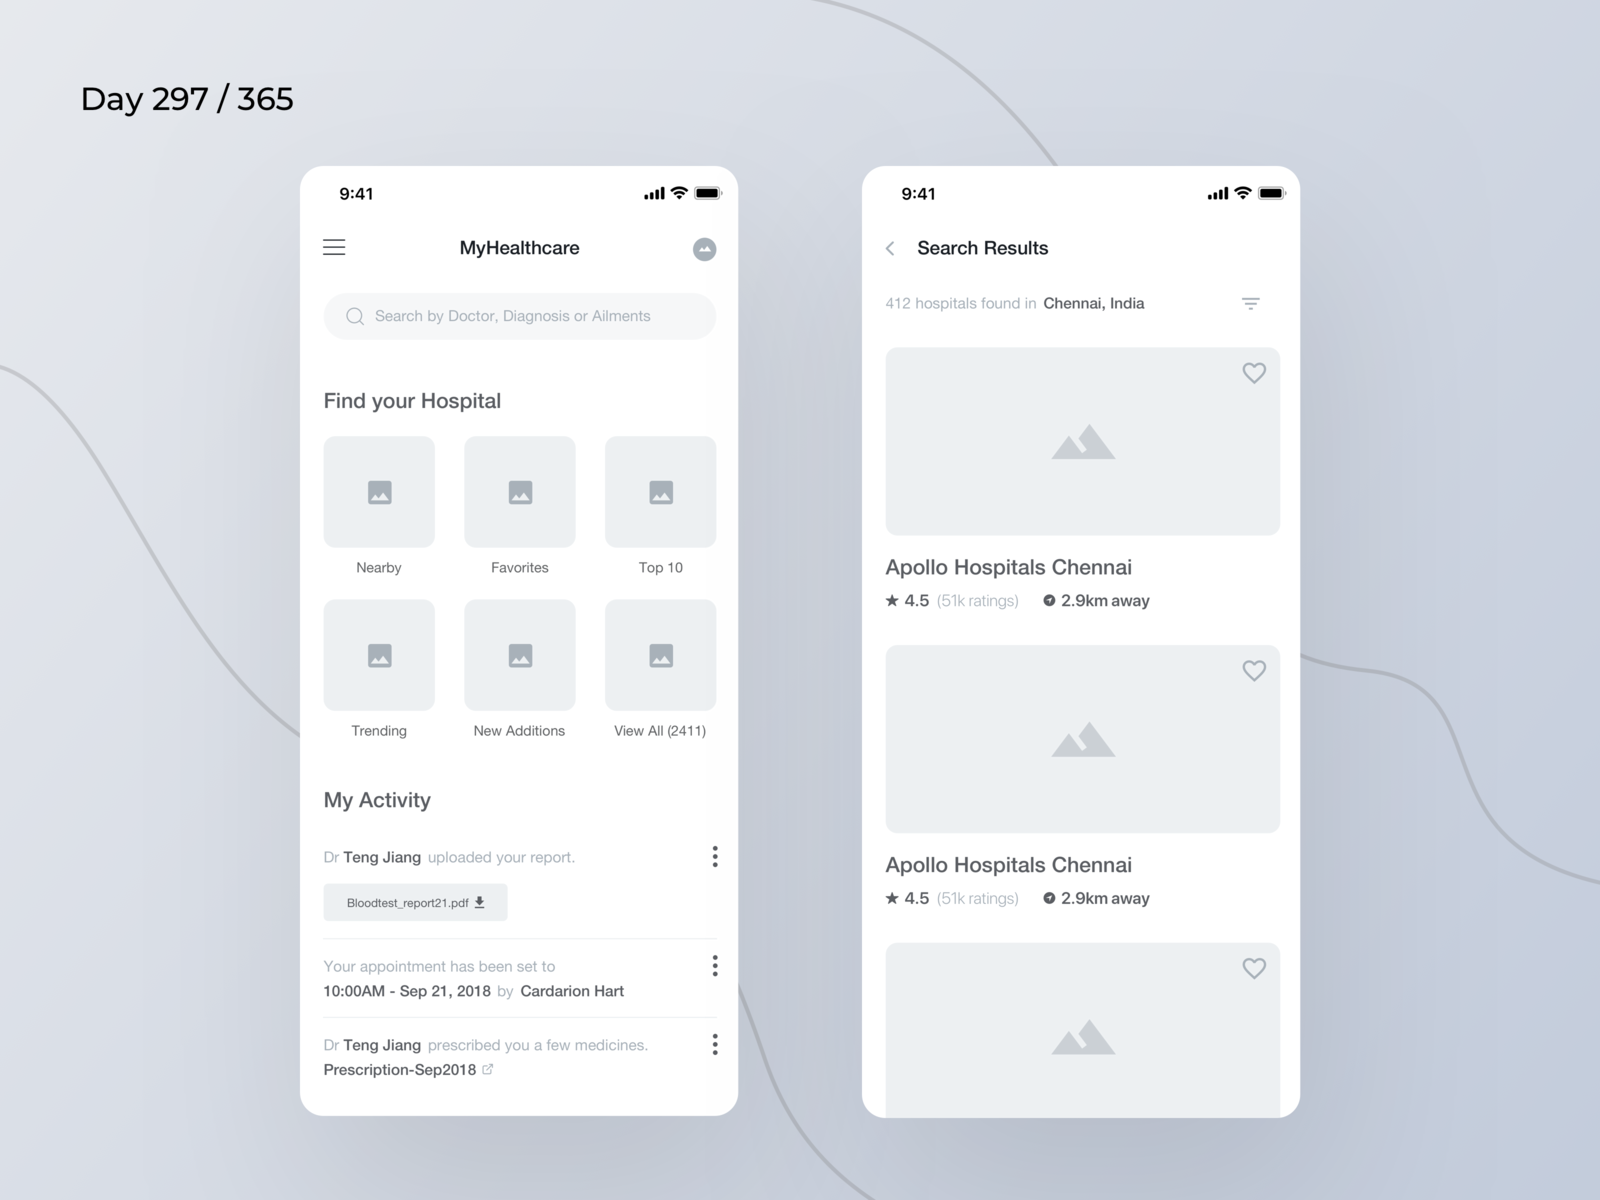 Hospital Finder App Wireframe | Day 297/365 - Project365 by Kishore